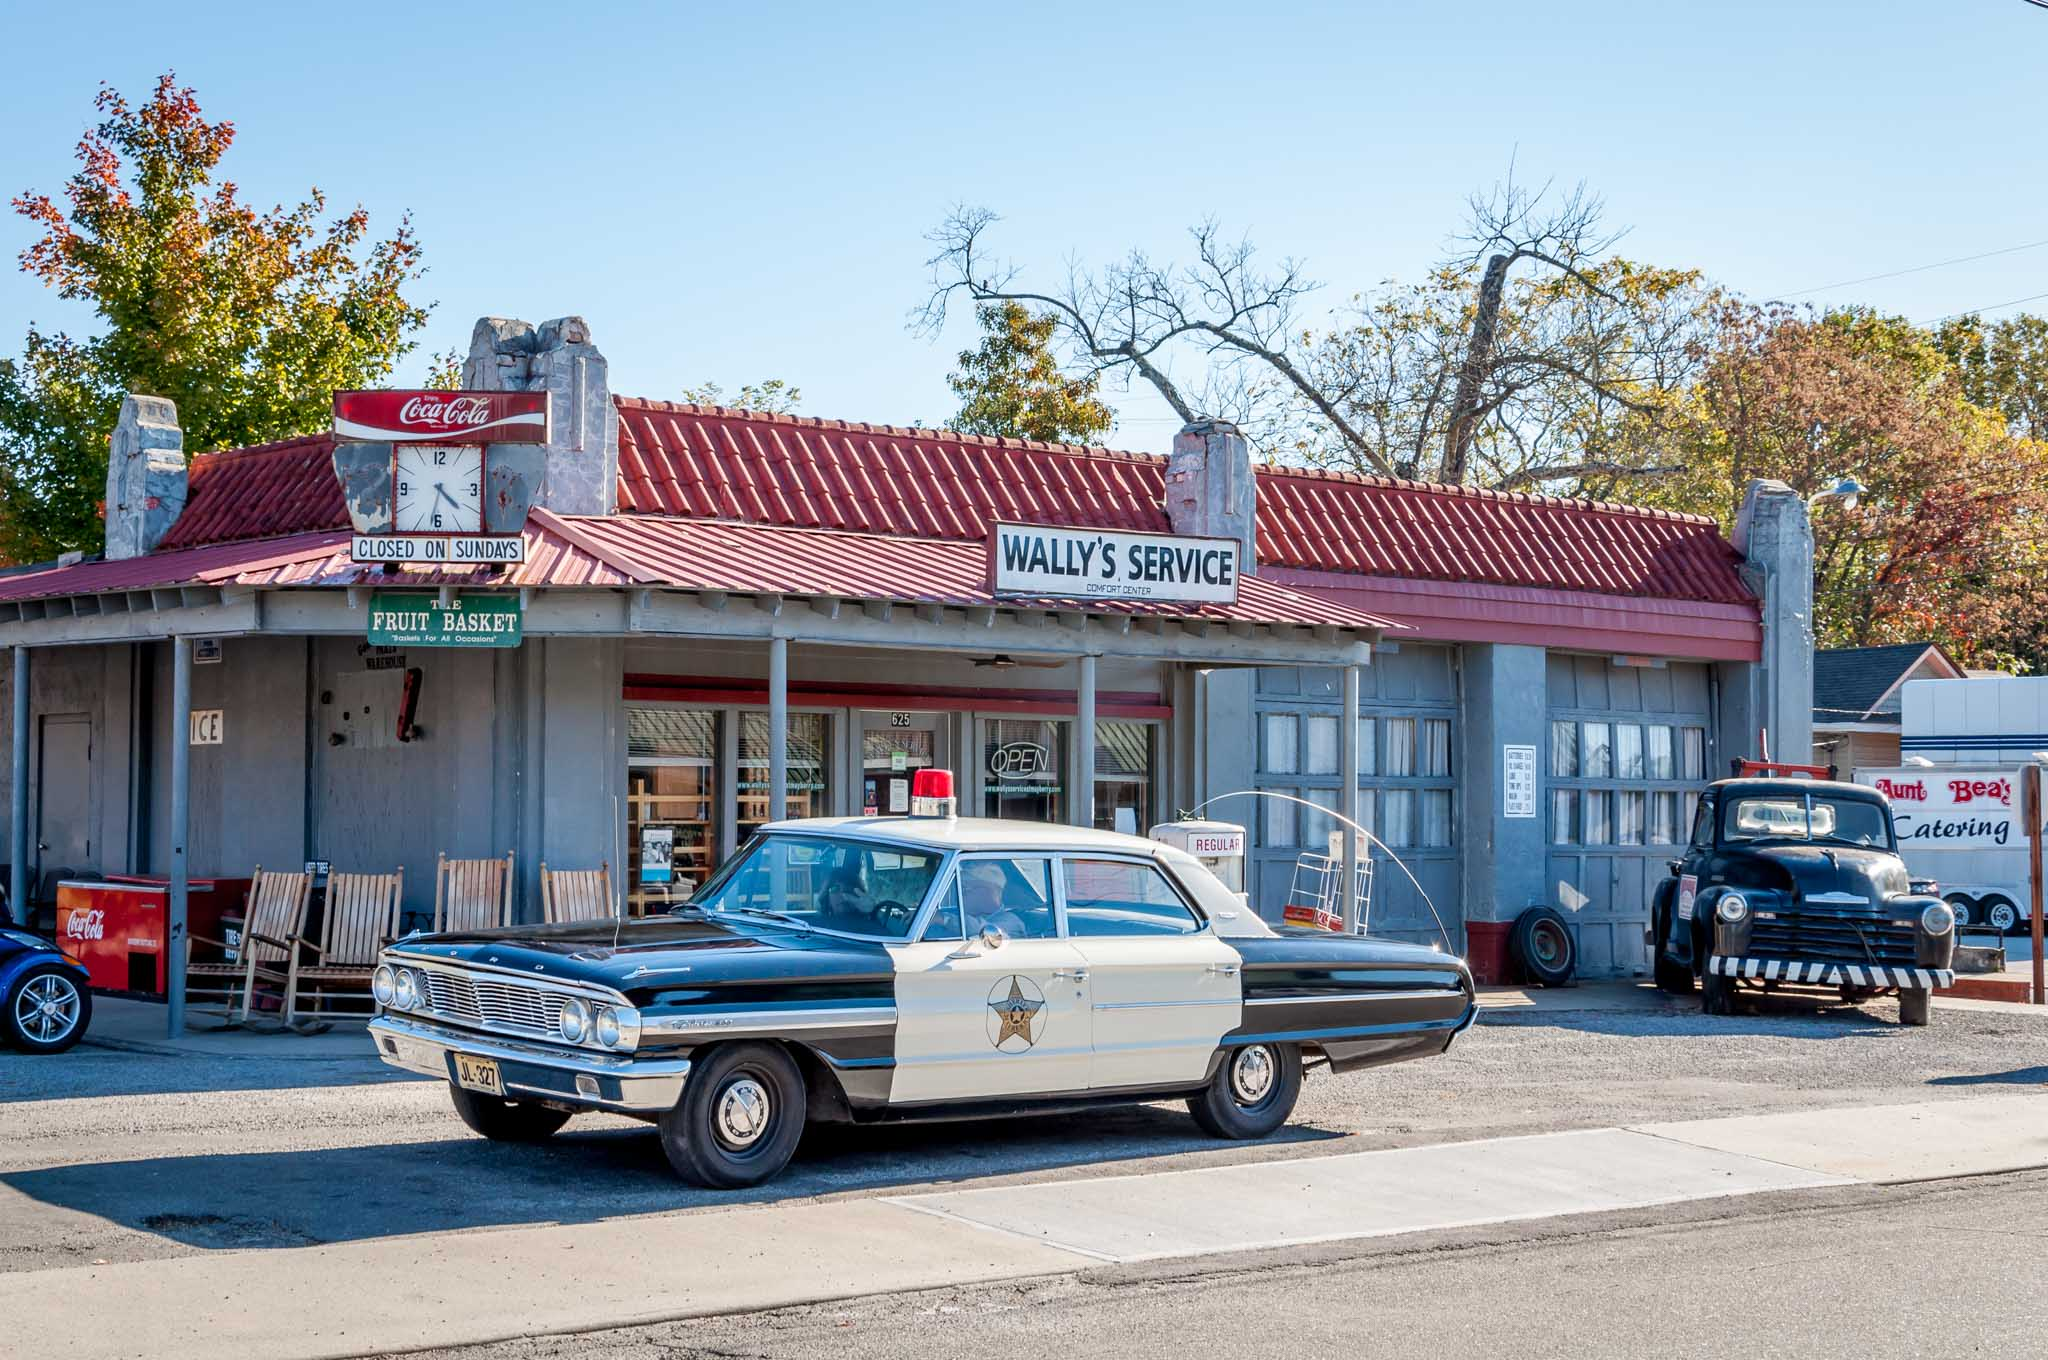 A squad car tour shows visitors the sights of Mayberry (aka Mt Airy, North Carolina). It's one of the unique things to do in Mount Airy NC